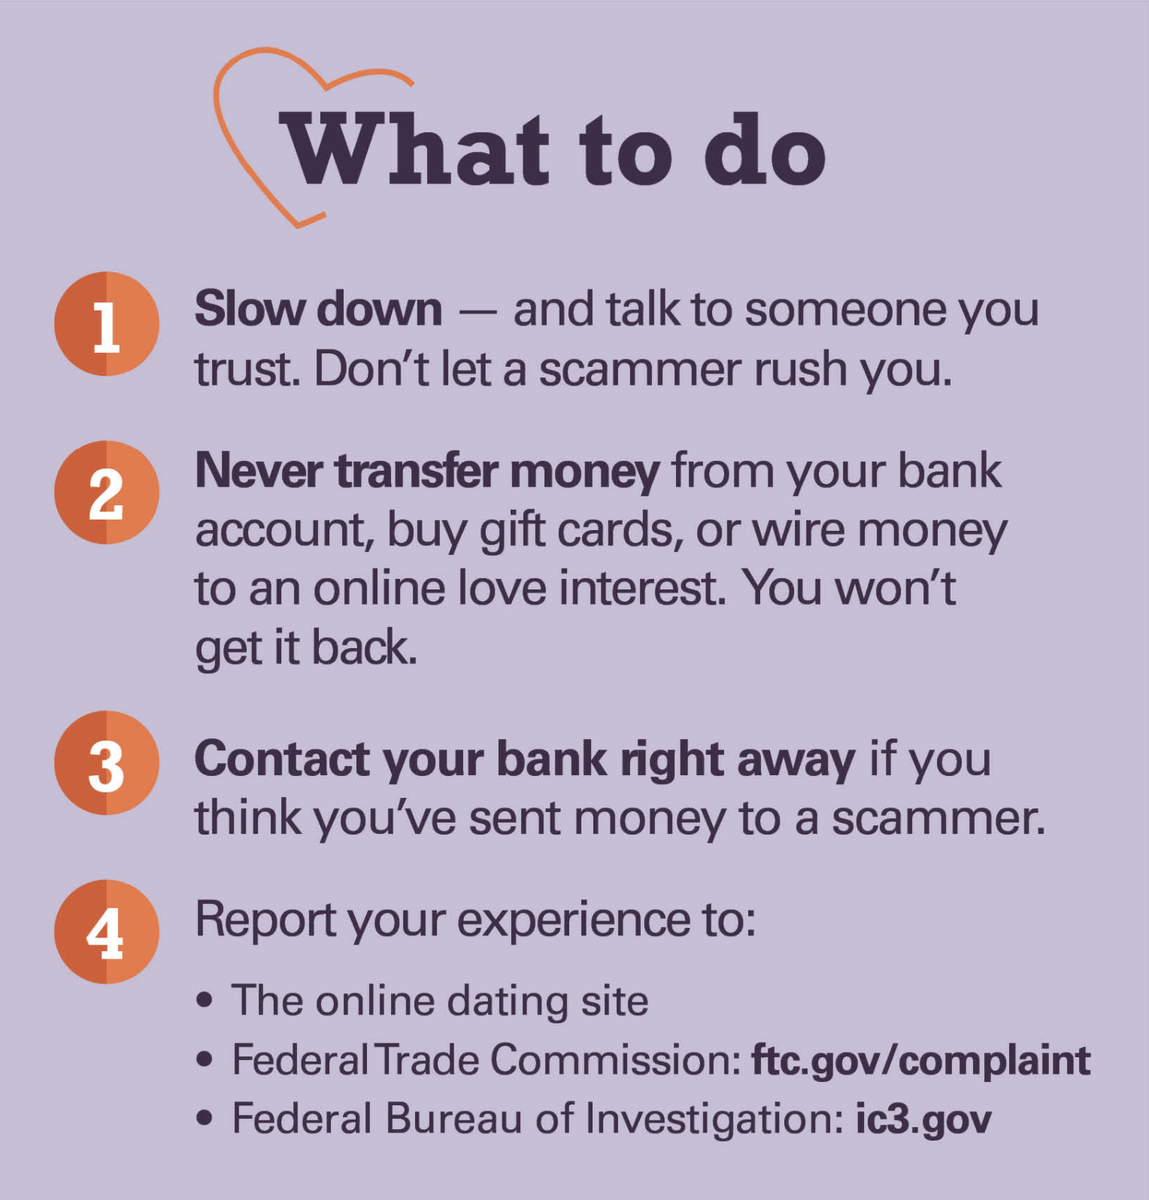 Fbi On Twitter Online Scammers Can Break Your Heart And Your Bank Account Beware Romance Scams And Report Fraud And Attempted Fraud To The Fbi At Https T Co Mwss57c5gi And The Ftc At Https T Co Vyedoappxm